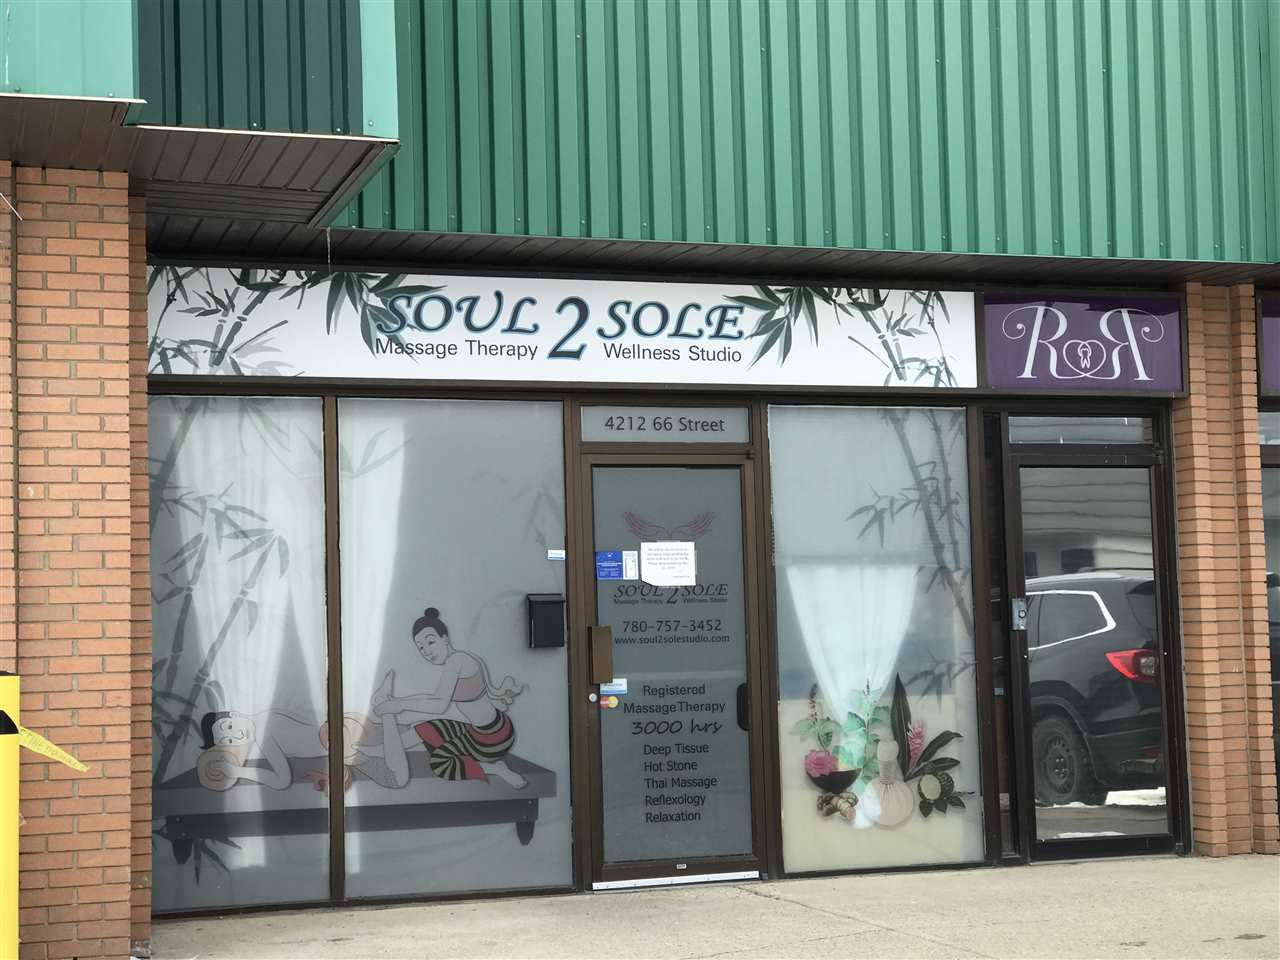 Main Photo: 4212 66 Street NW in Edmonton: Zone 29 Retail for sale or lease : MLS®# E4193621